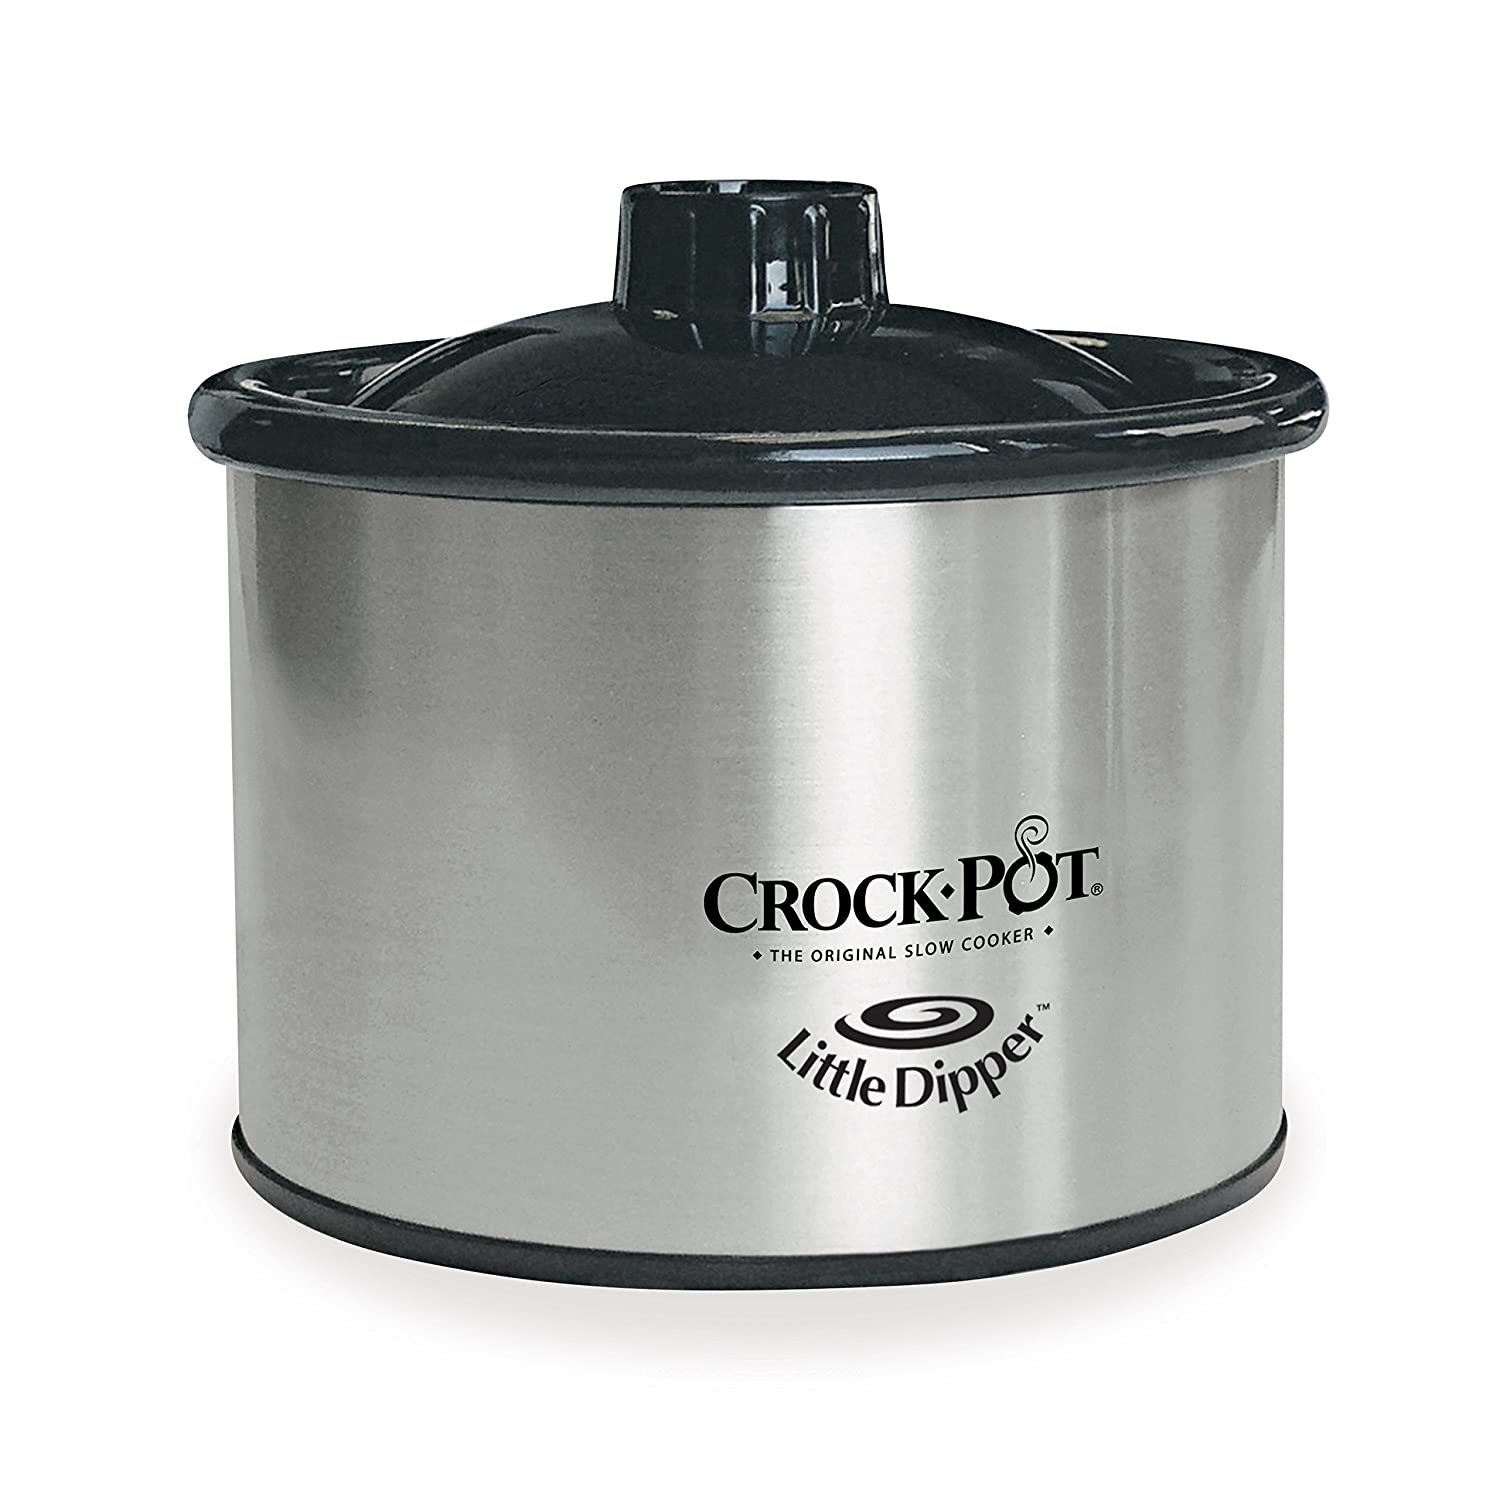 Crock-Pot 16-Ounce Little Dipper, Chrome